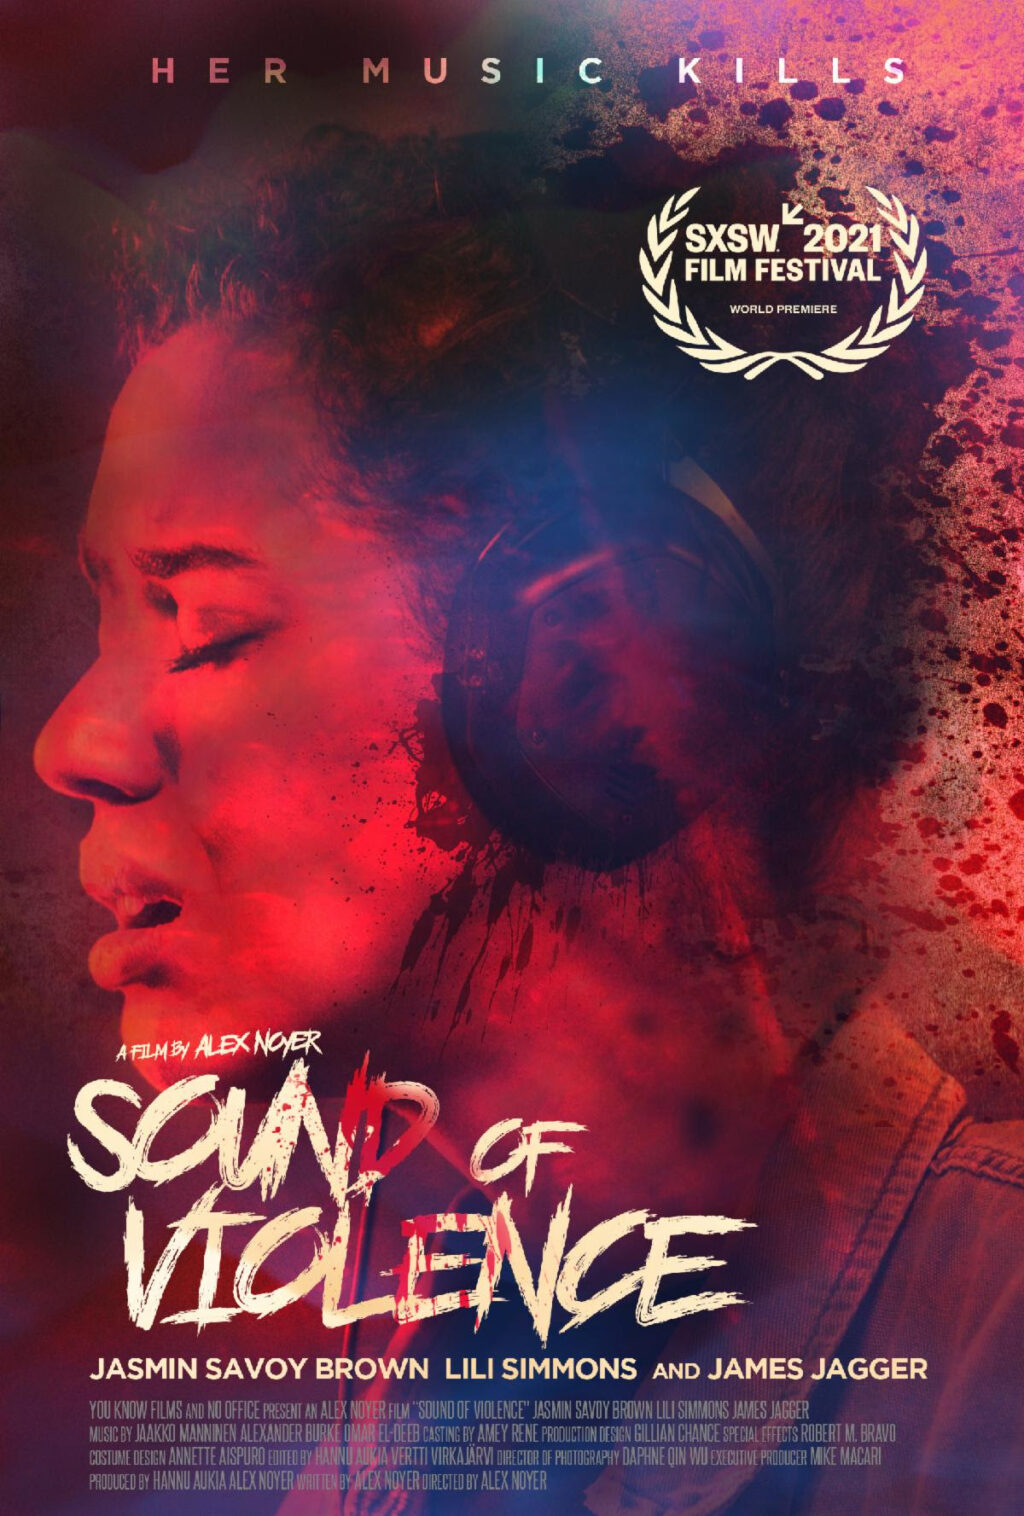 Sound of Violence Poster 1024x1516 - SOUND OF VIOLENCE is Now Set for VOD Release on May 21st